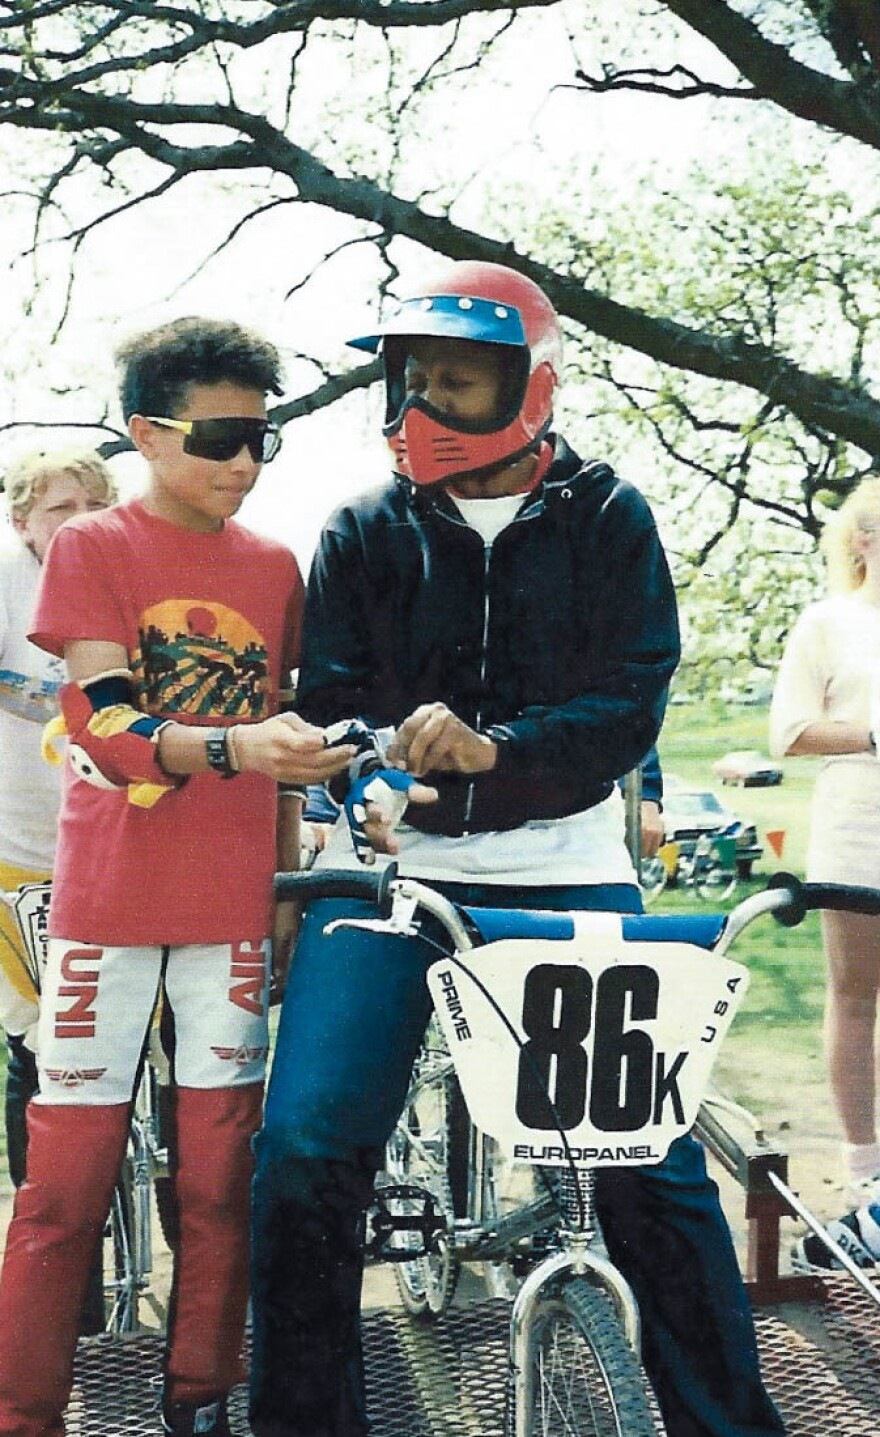 In a photo from 1988, Max Knauer gives his mother, Kittie Weston-Knauer, a hand as she prepares to start her first BMX race.